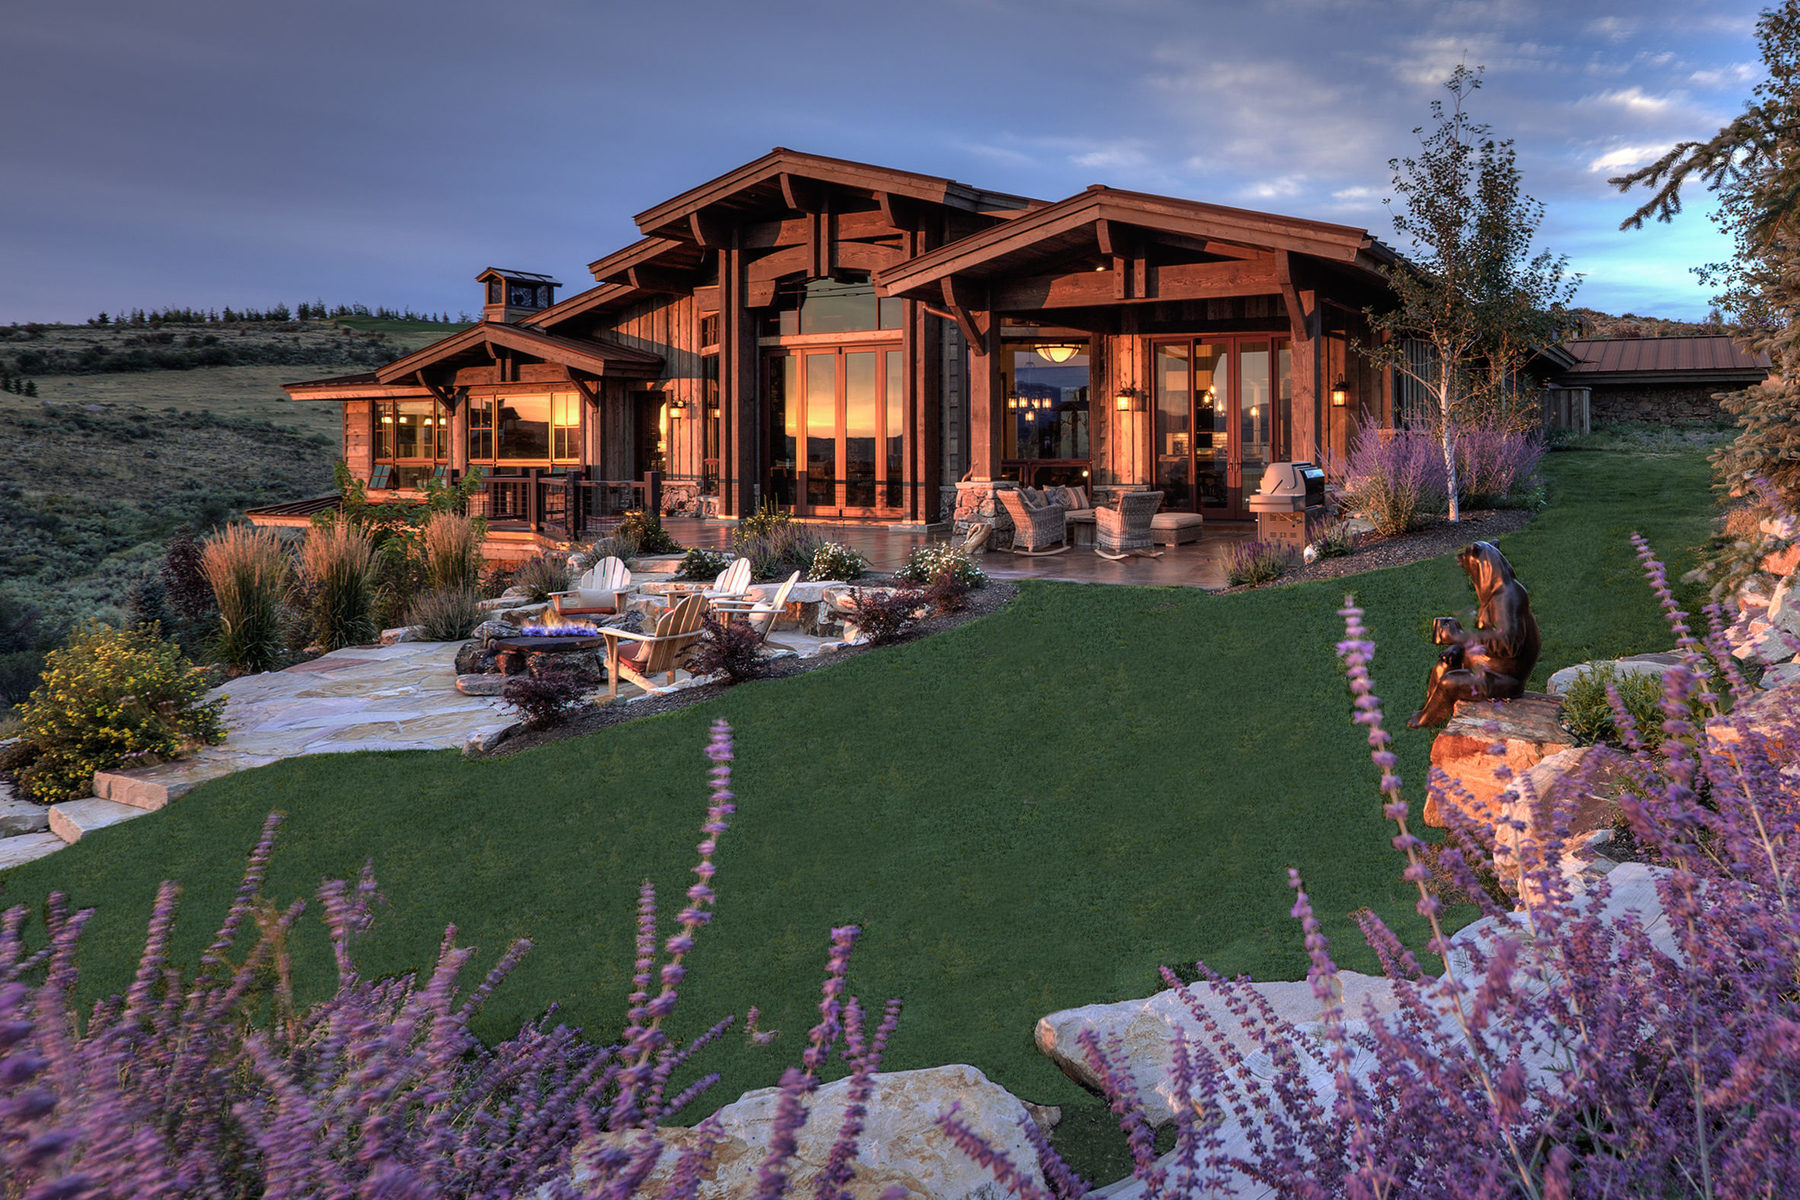 一戸建て のために 売買 アット This Is The Wow Home On The Wow Lot In All Of Promontory 3347 E Pete Dye Draw Park City, ユタ, 84098 アメリカ合衆国